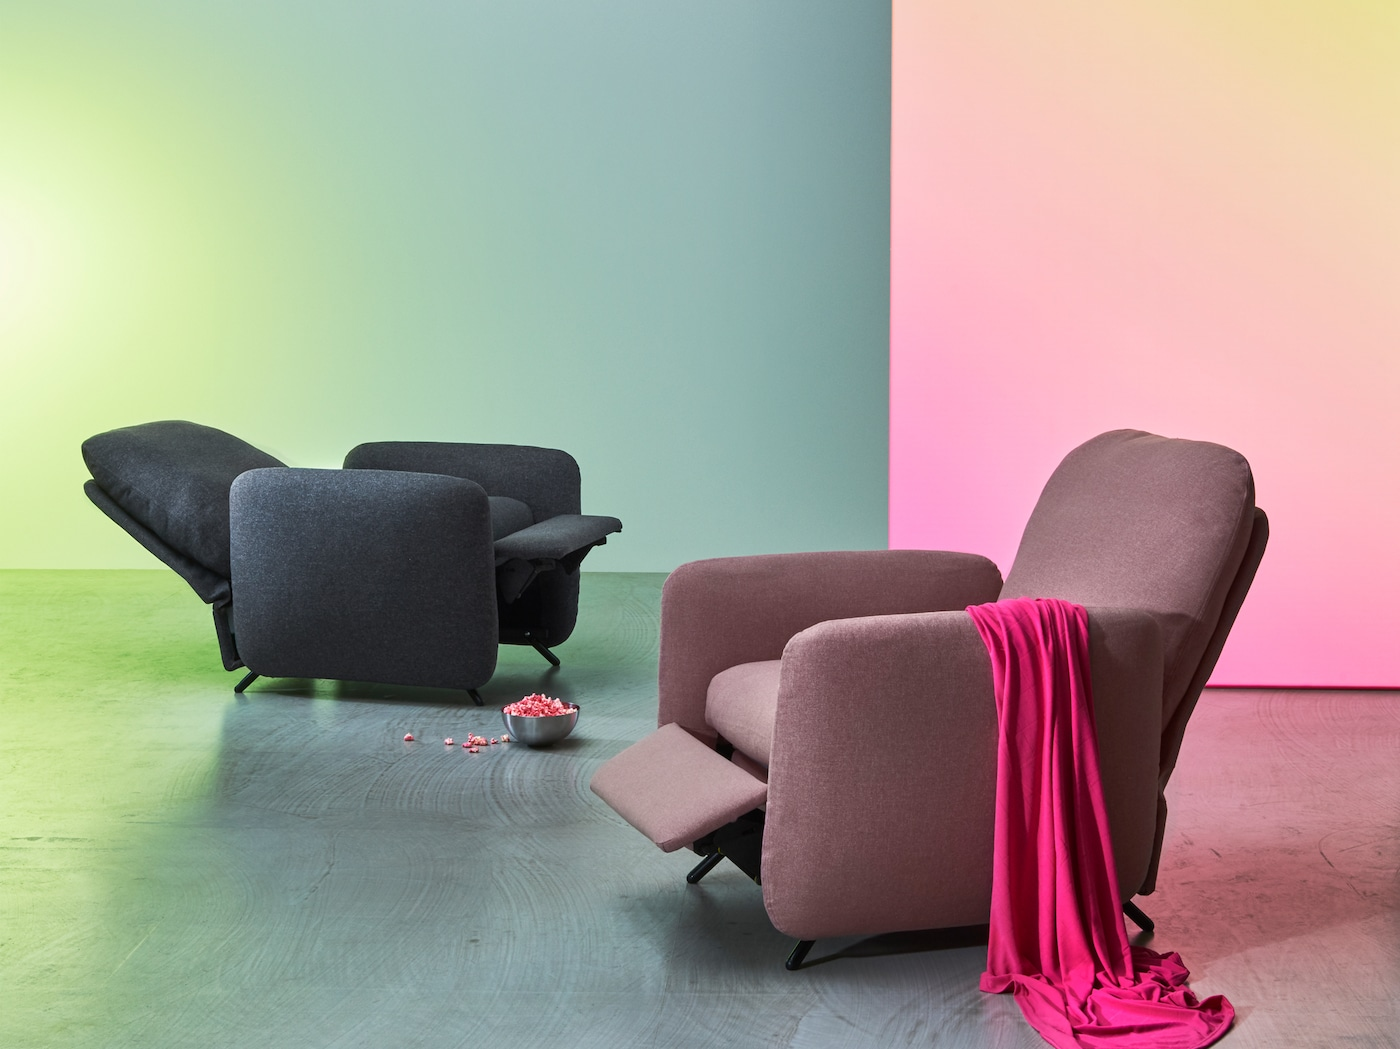 Two EKOLSUND recliners with an in-built footstool shown in grey and pink-brown in different reclining positions.